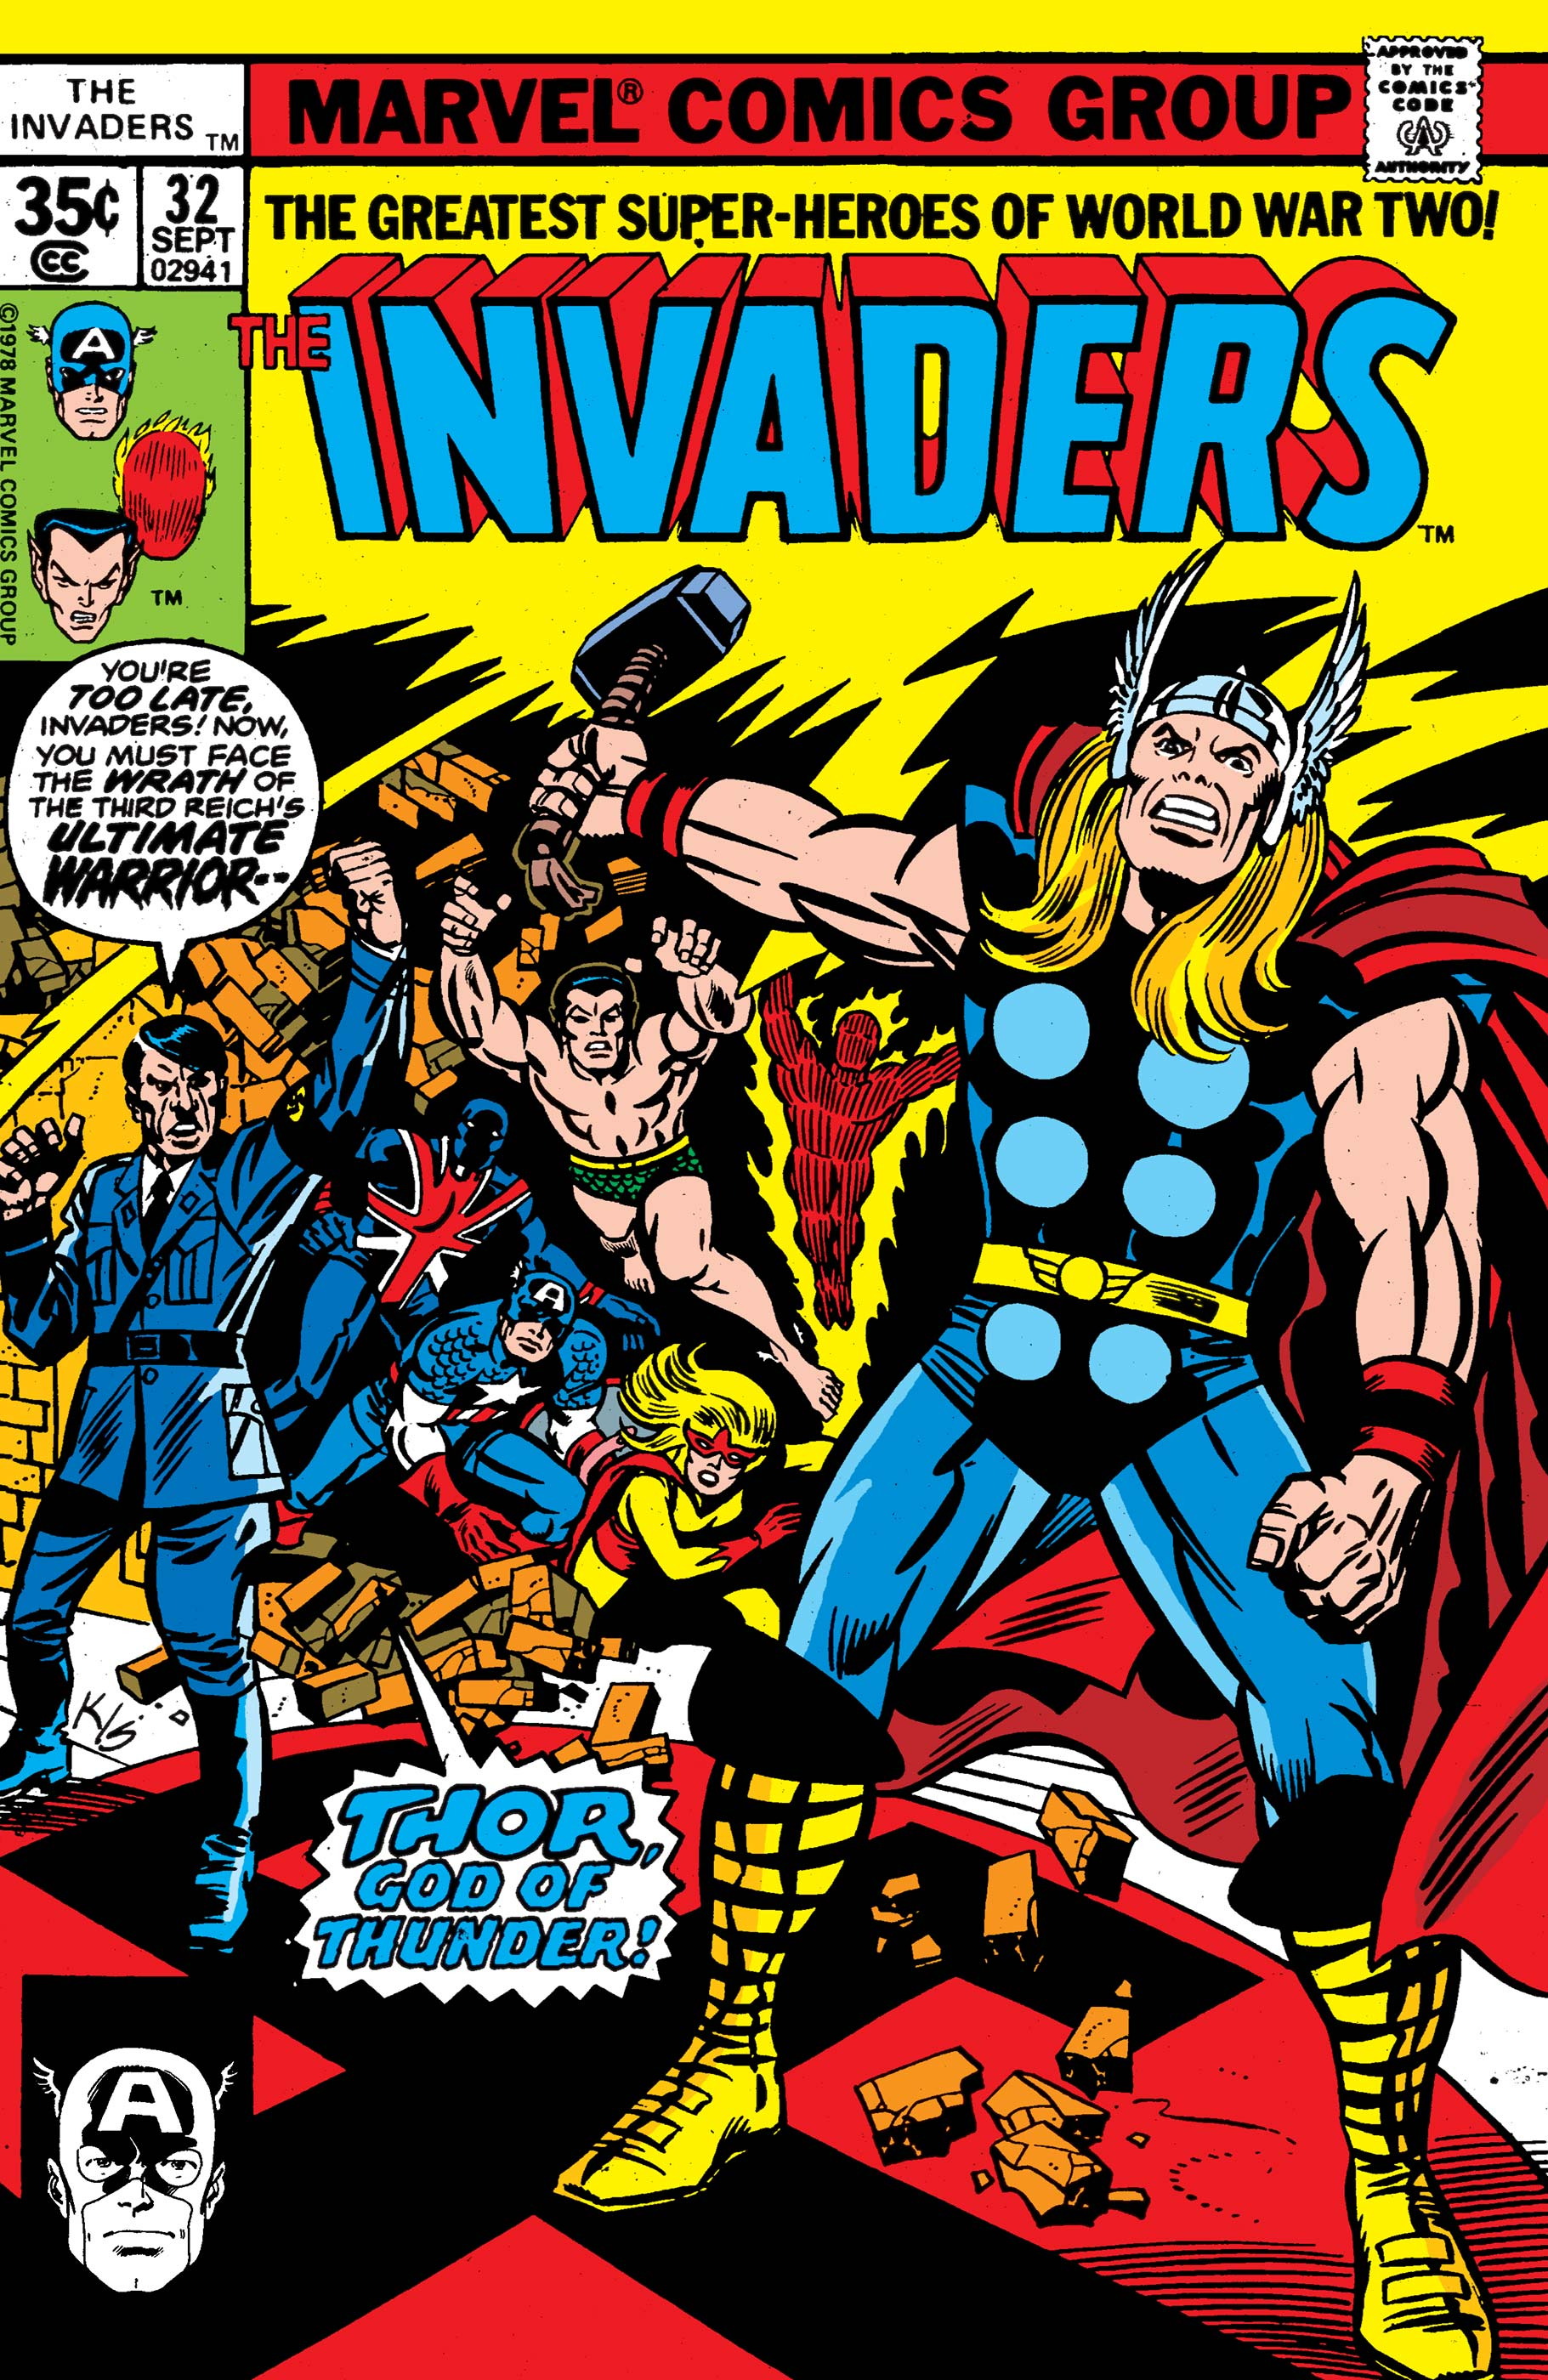 Invaders (1975) #32